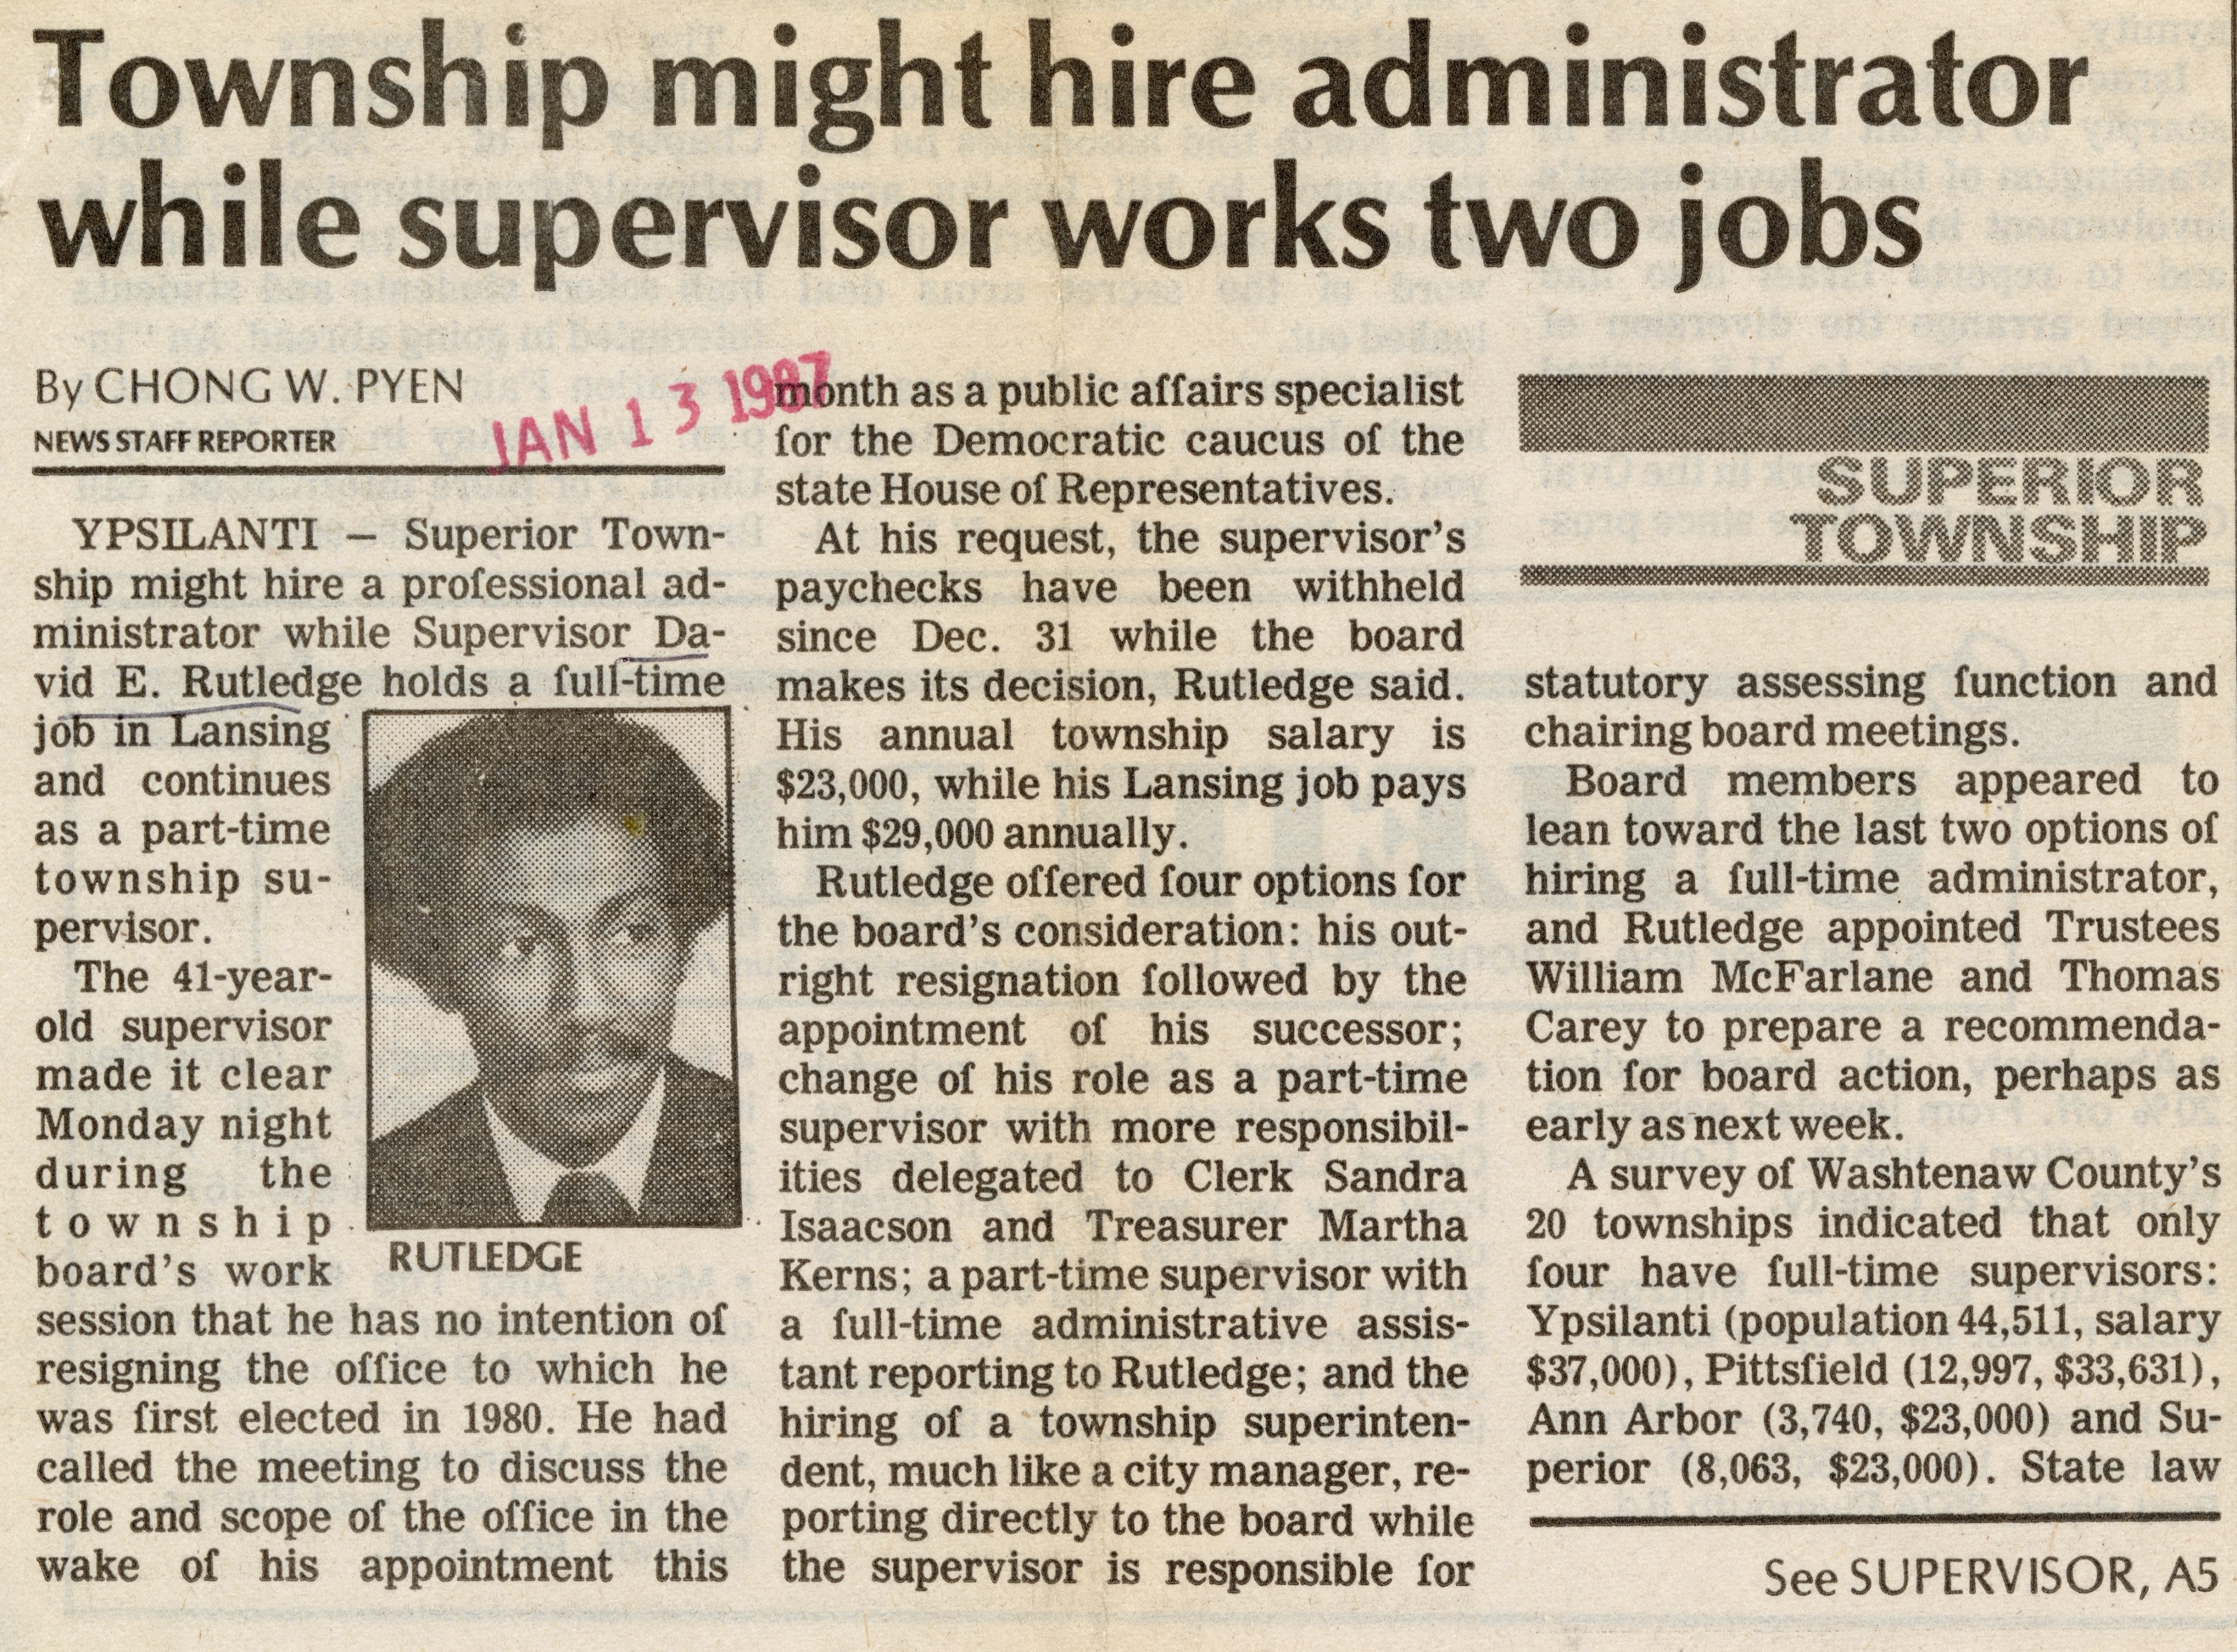 Township Might Hire Administrator While Supervisor Works Two Jobs image